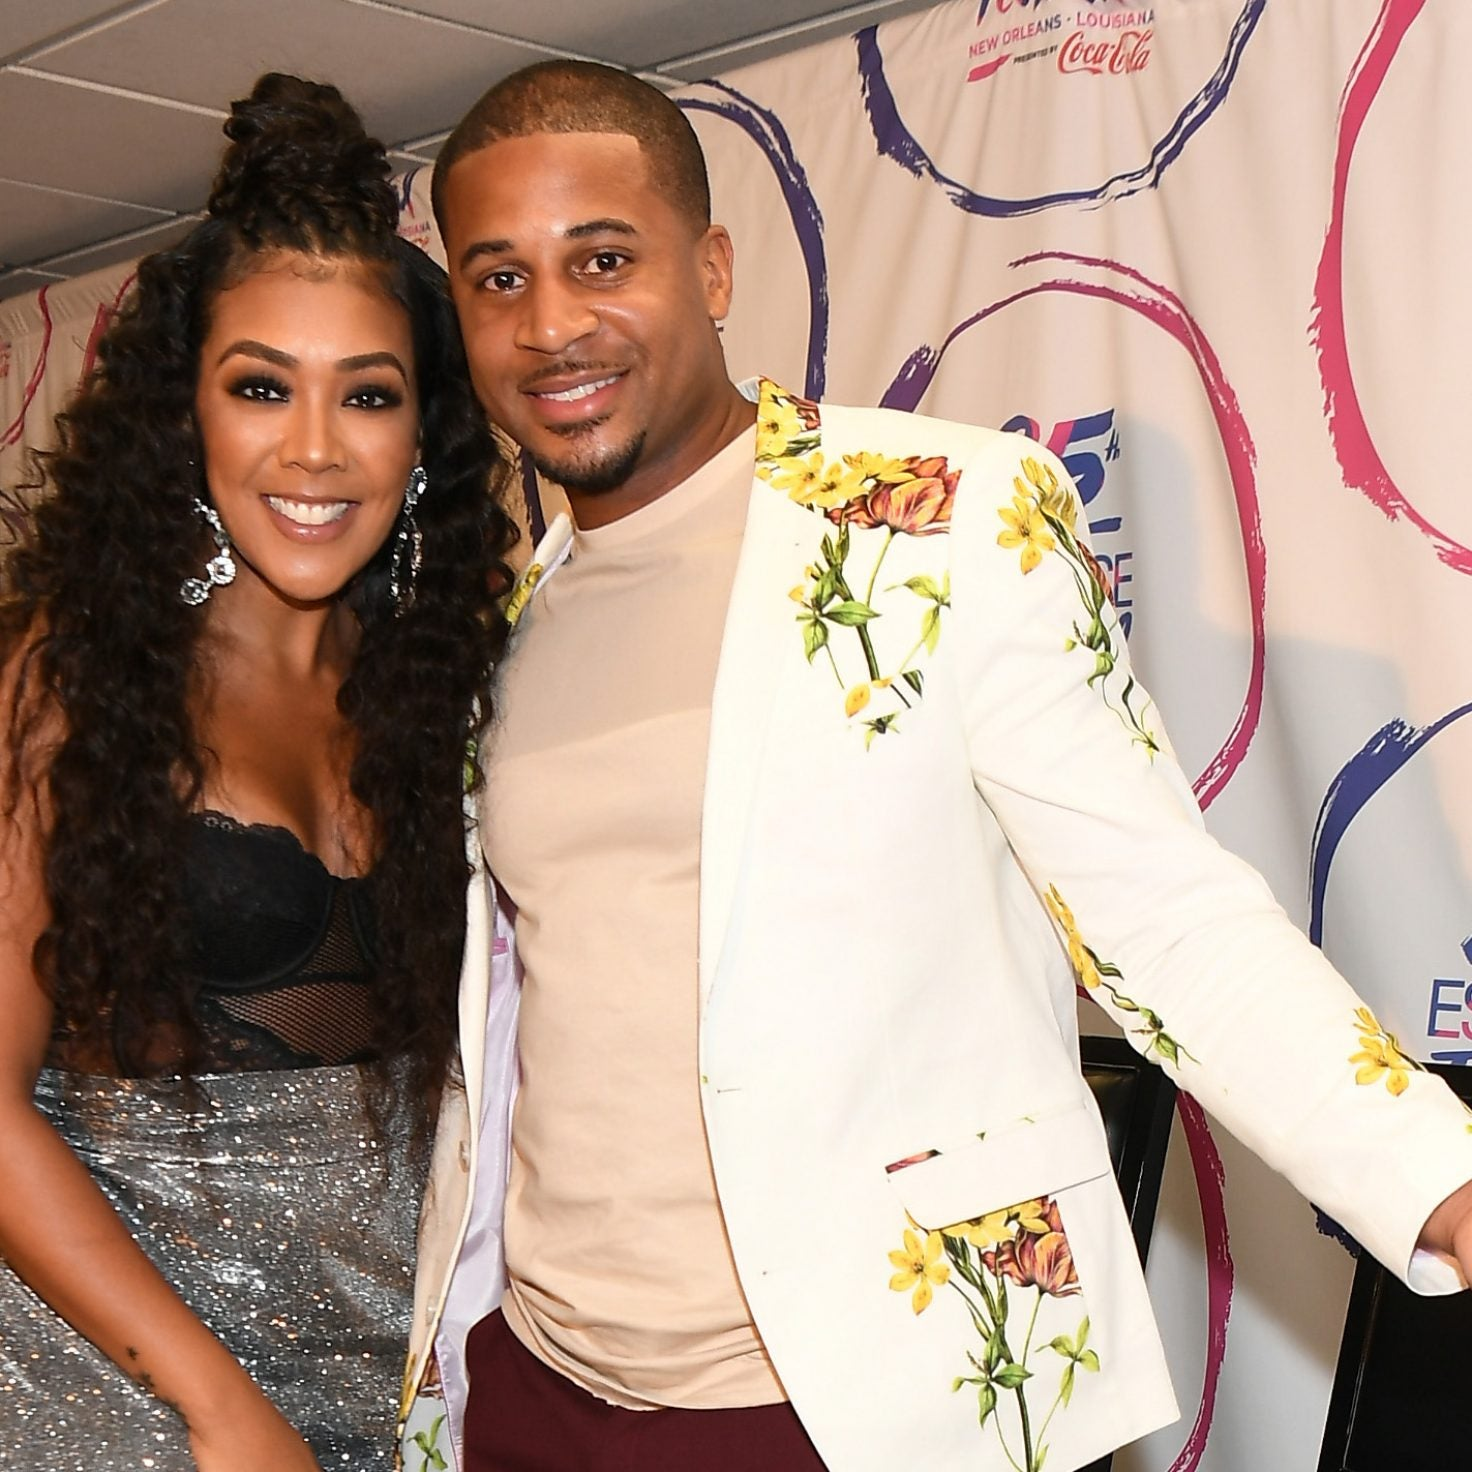 Grab A Tissue! Influencer Couple Khadeen And Devale Ellis Got An Anniversary Performance From Jamie Foxx